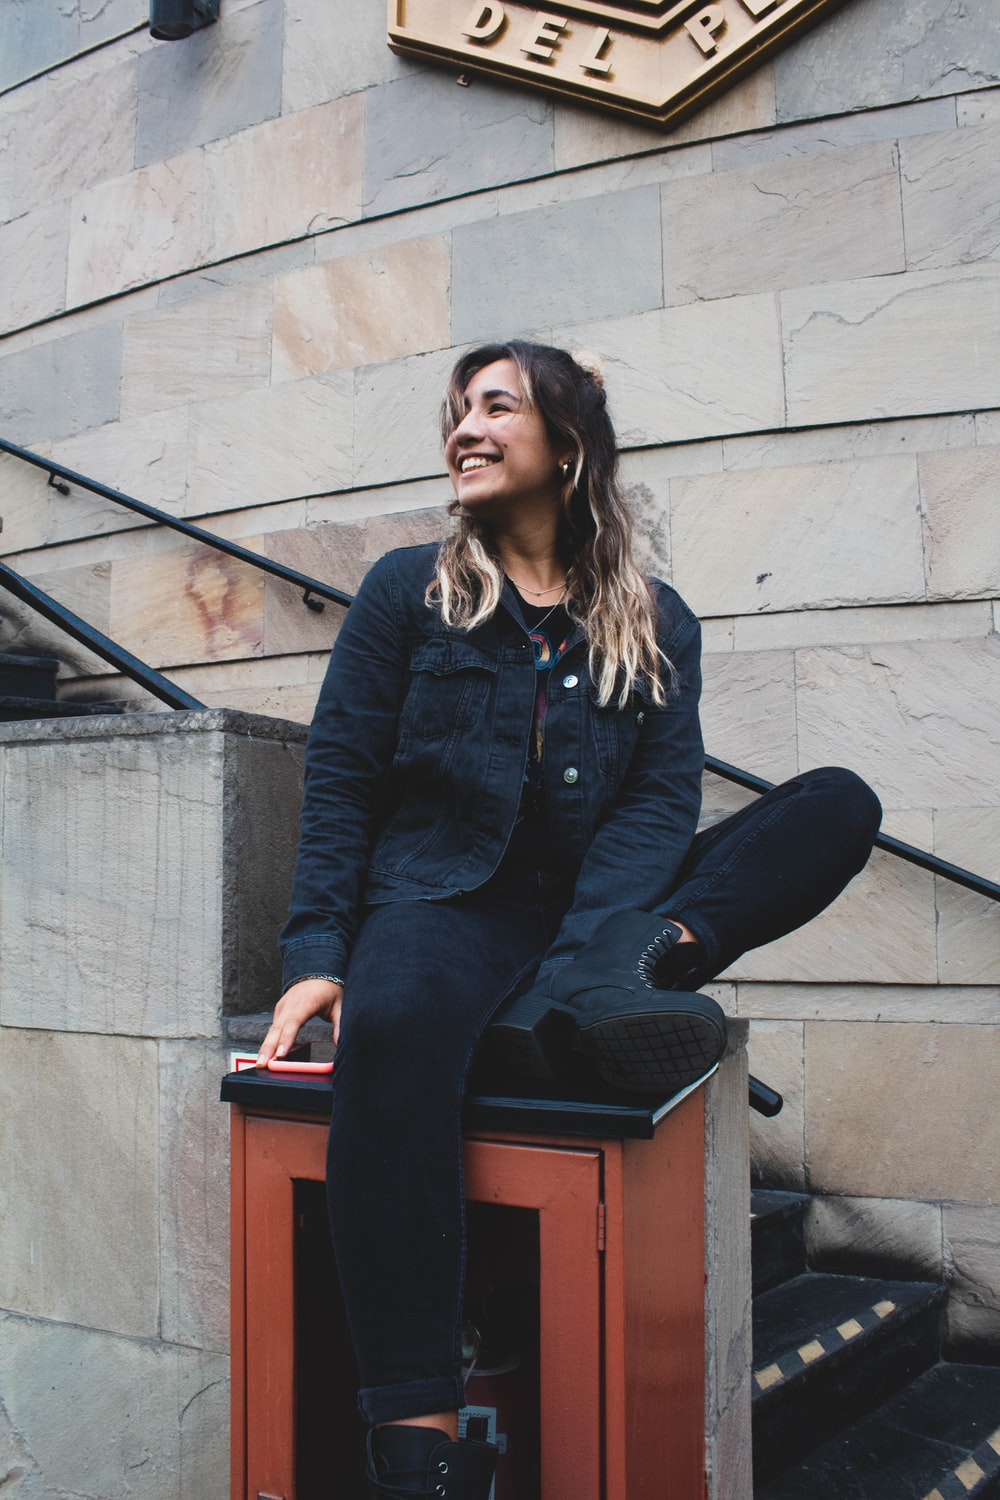 smiling woman in blue jacket and black denim jeans sitting on top of brown wall mounted box